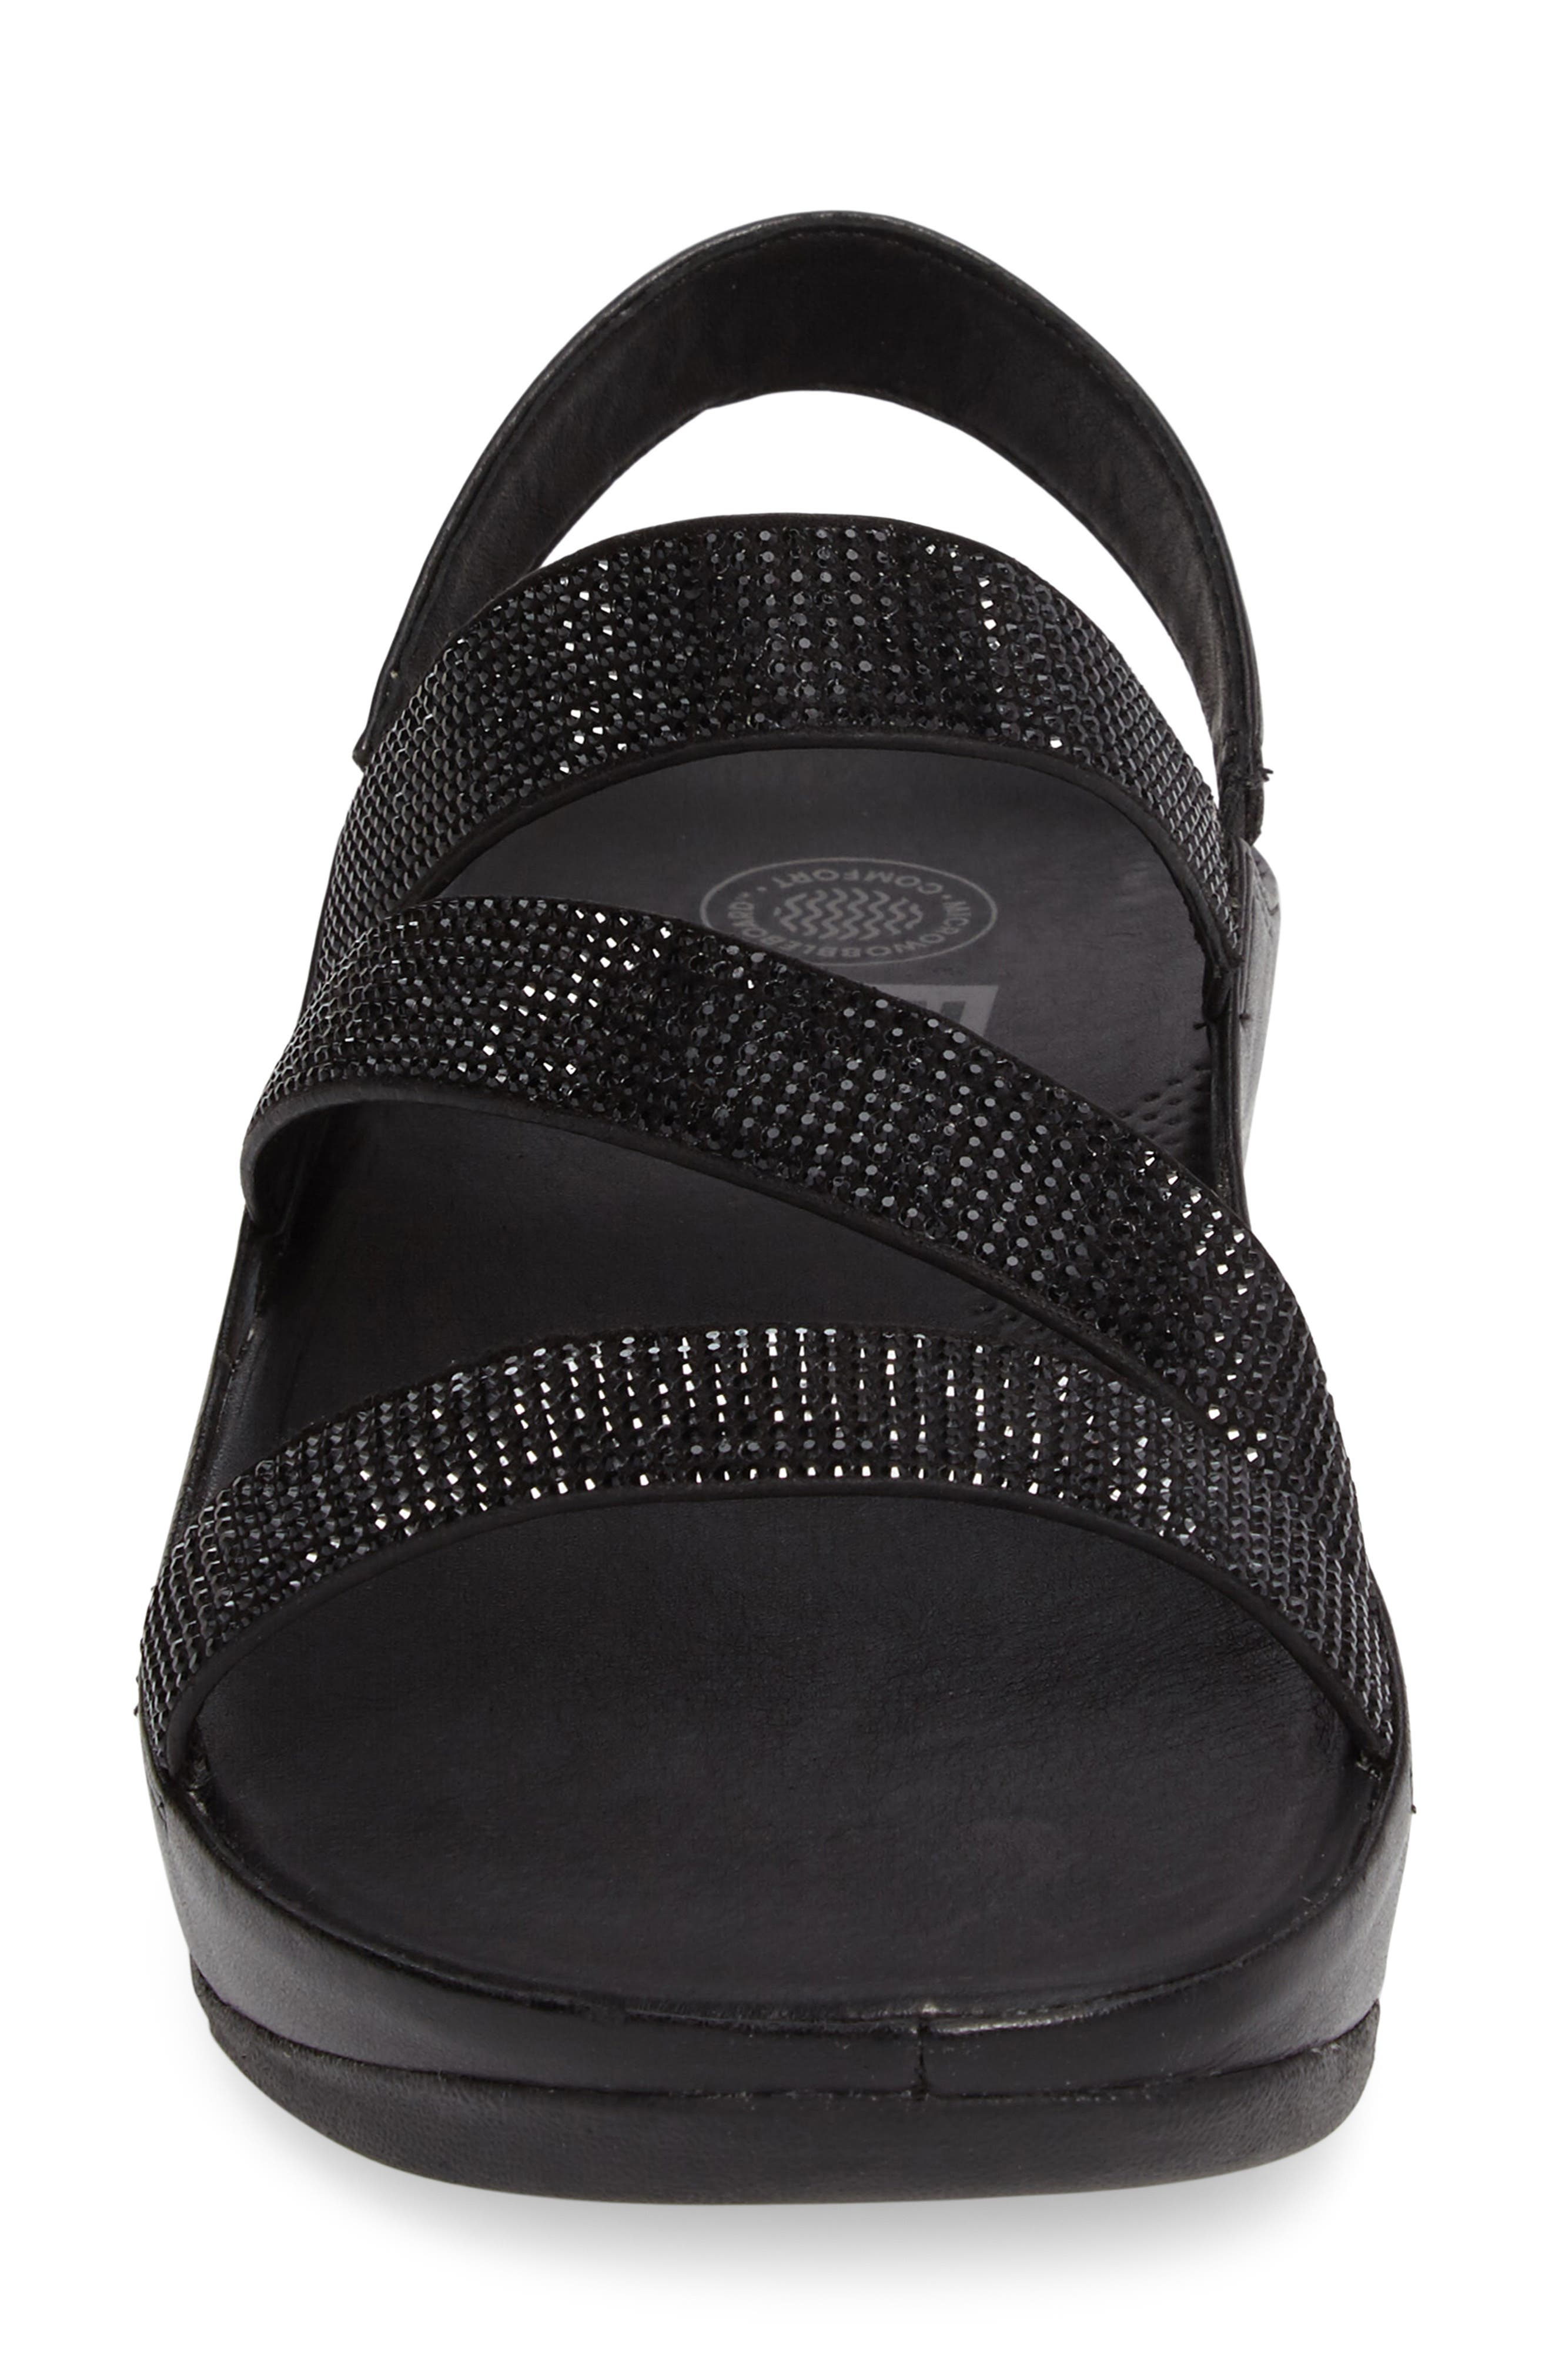 FITFLOP,                              Crystall Wedge Sandal,                             Alternate thumbnail 4, color,                             001